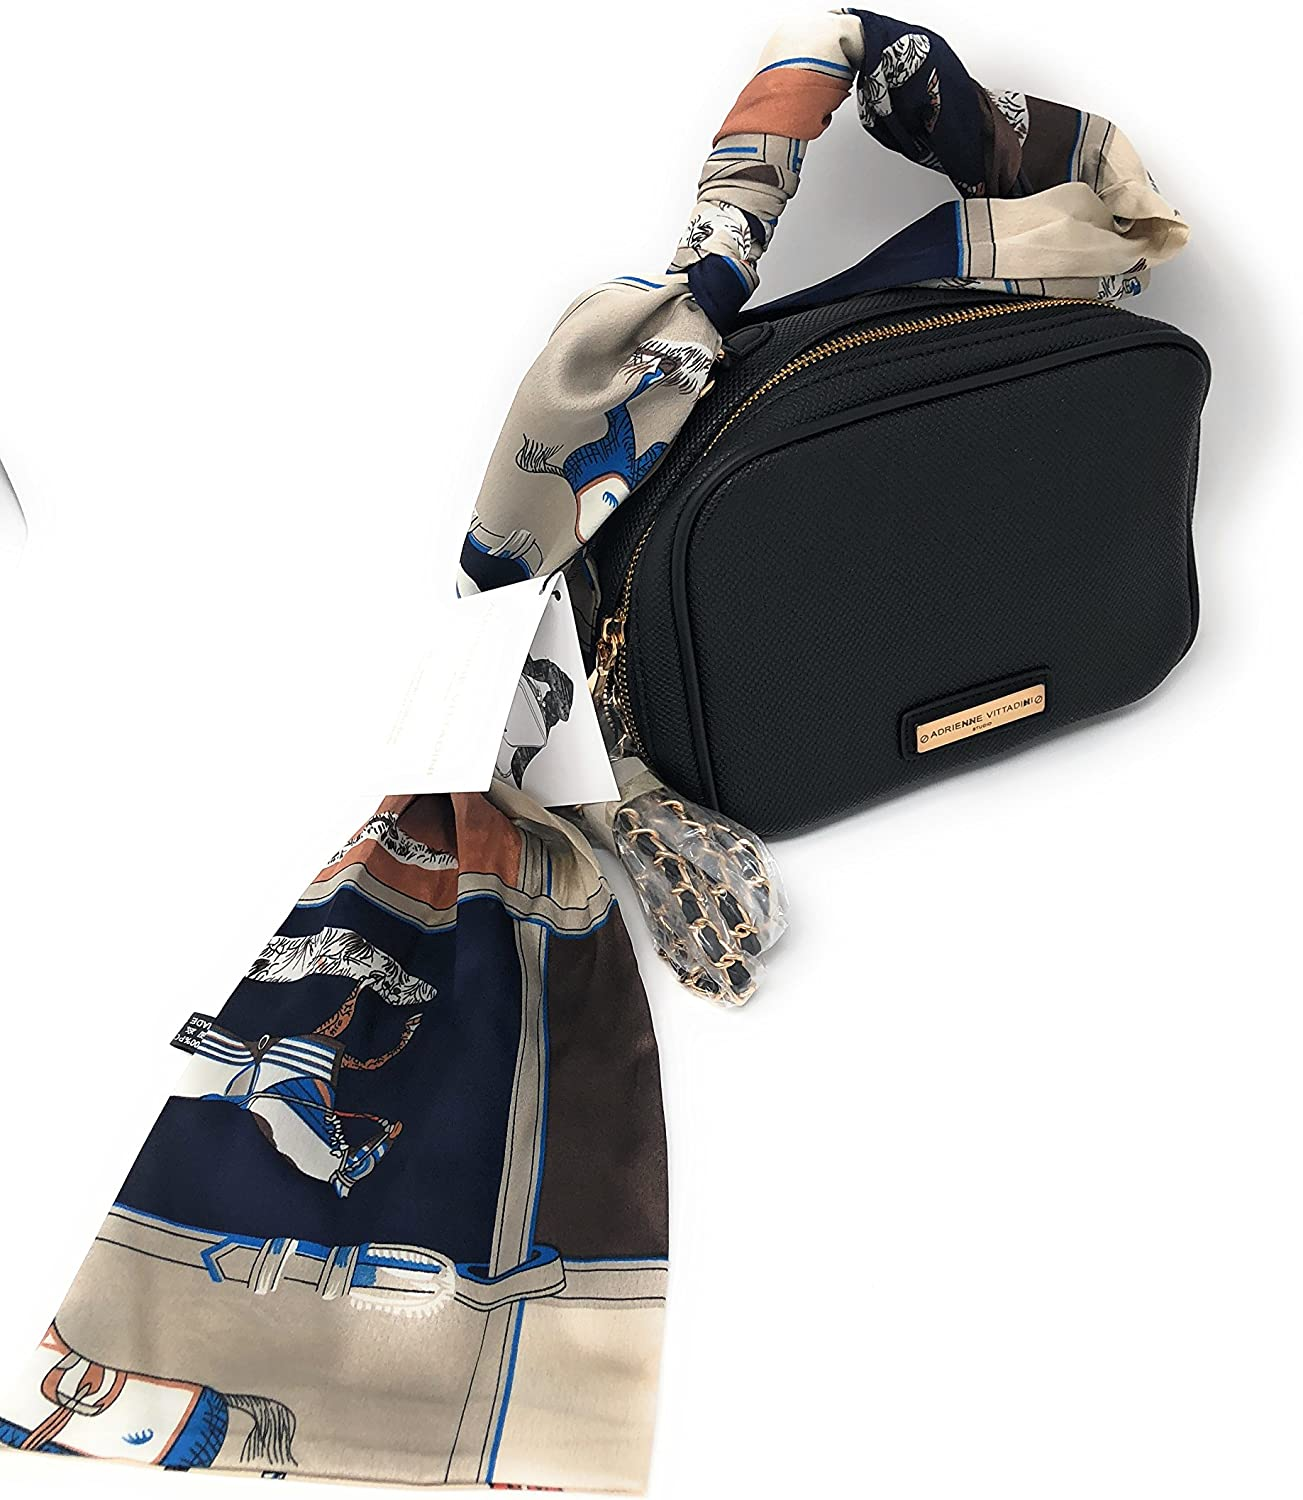 Adrienne Vittadini PU Handbag With Interior Organizer  Snake Embossed Black color with colorful Horses on Silk Scarf